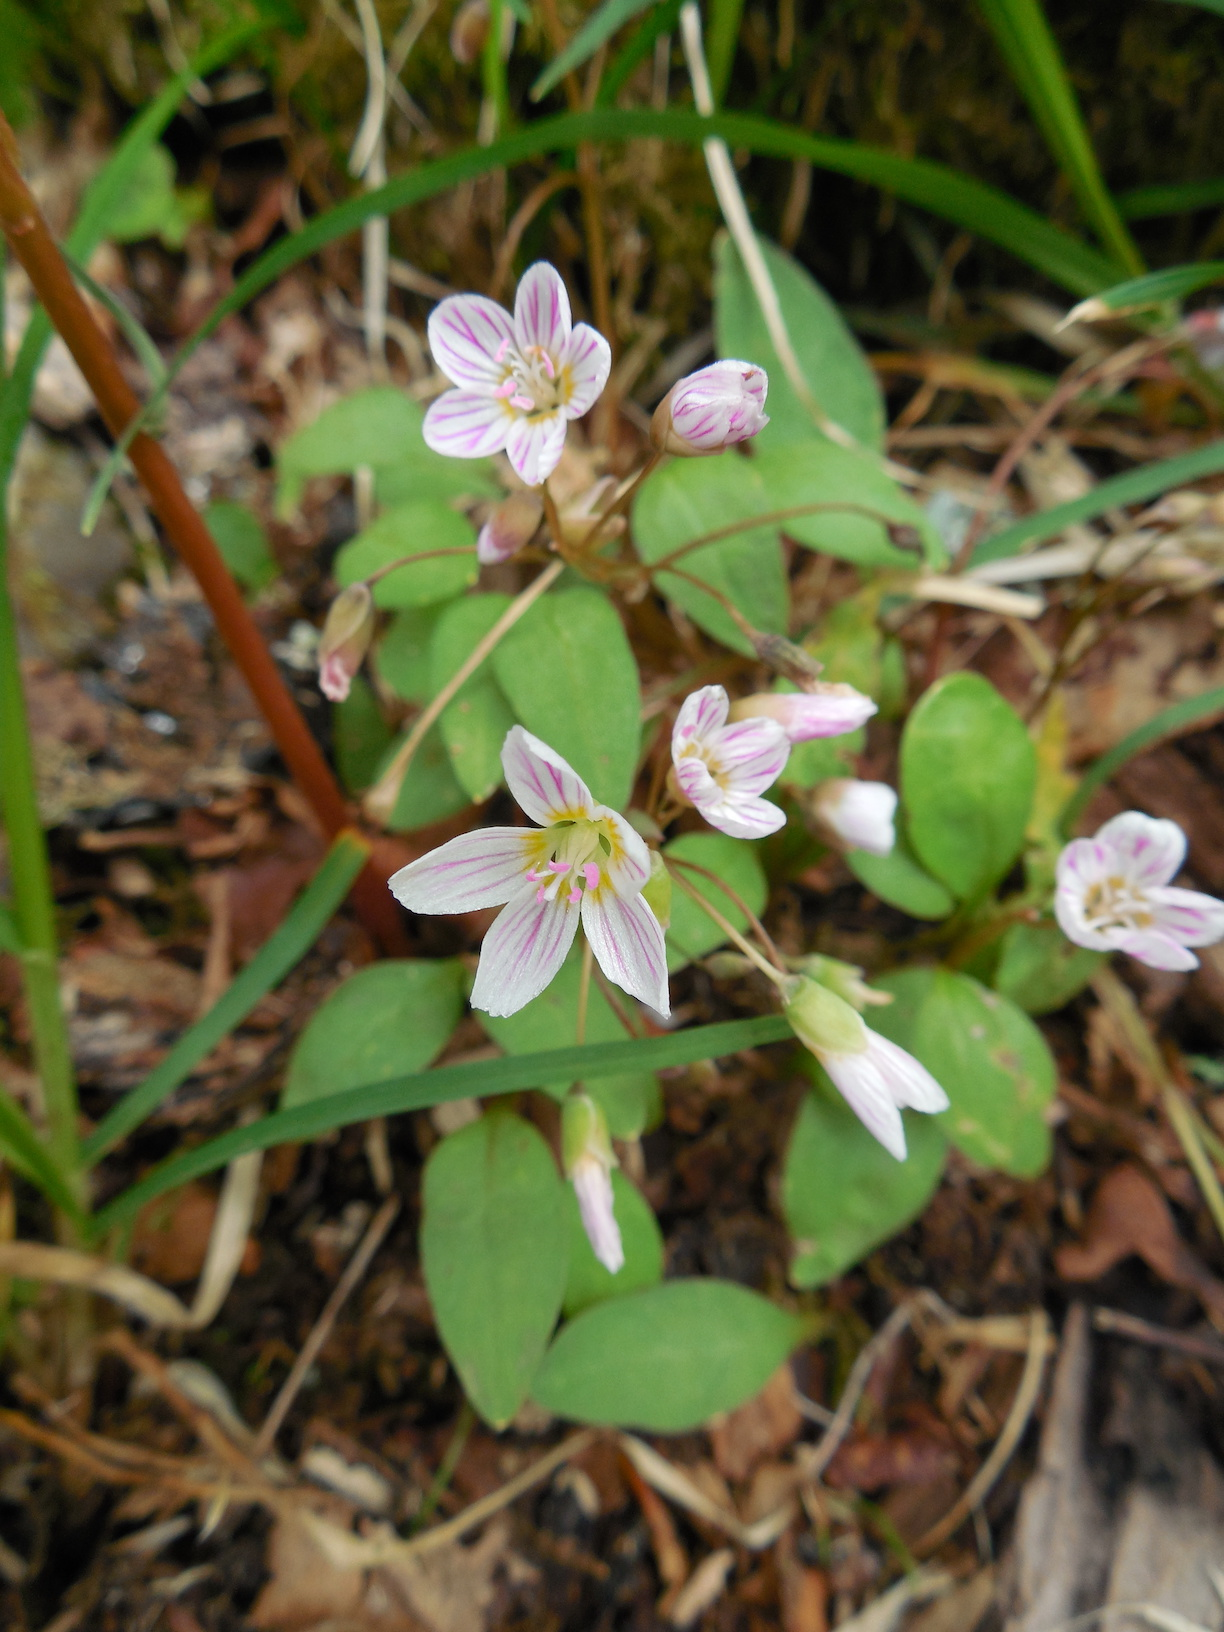 The Scientific Name is Claytonia caroliniana. You will likely hear them called Carolina Spring-beauty. This picture shows the  of Claytonia caroliniana